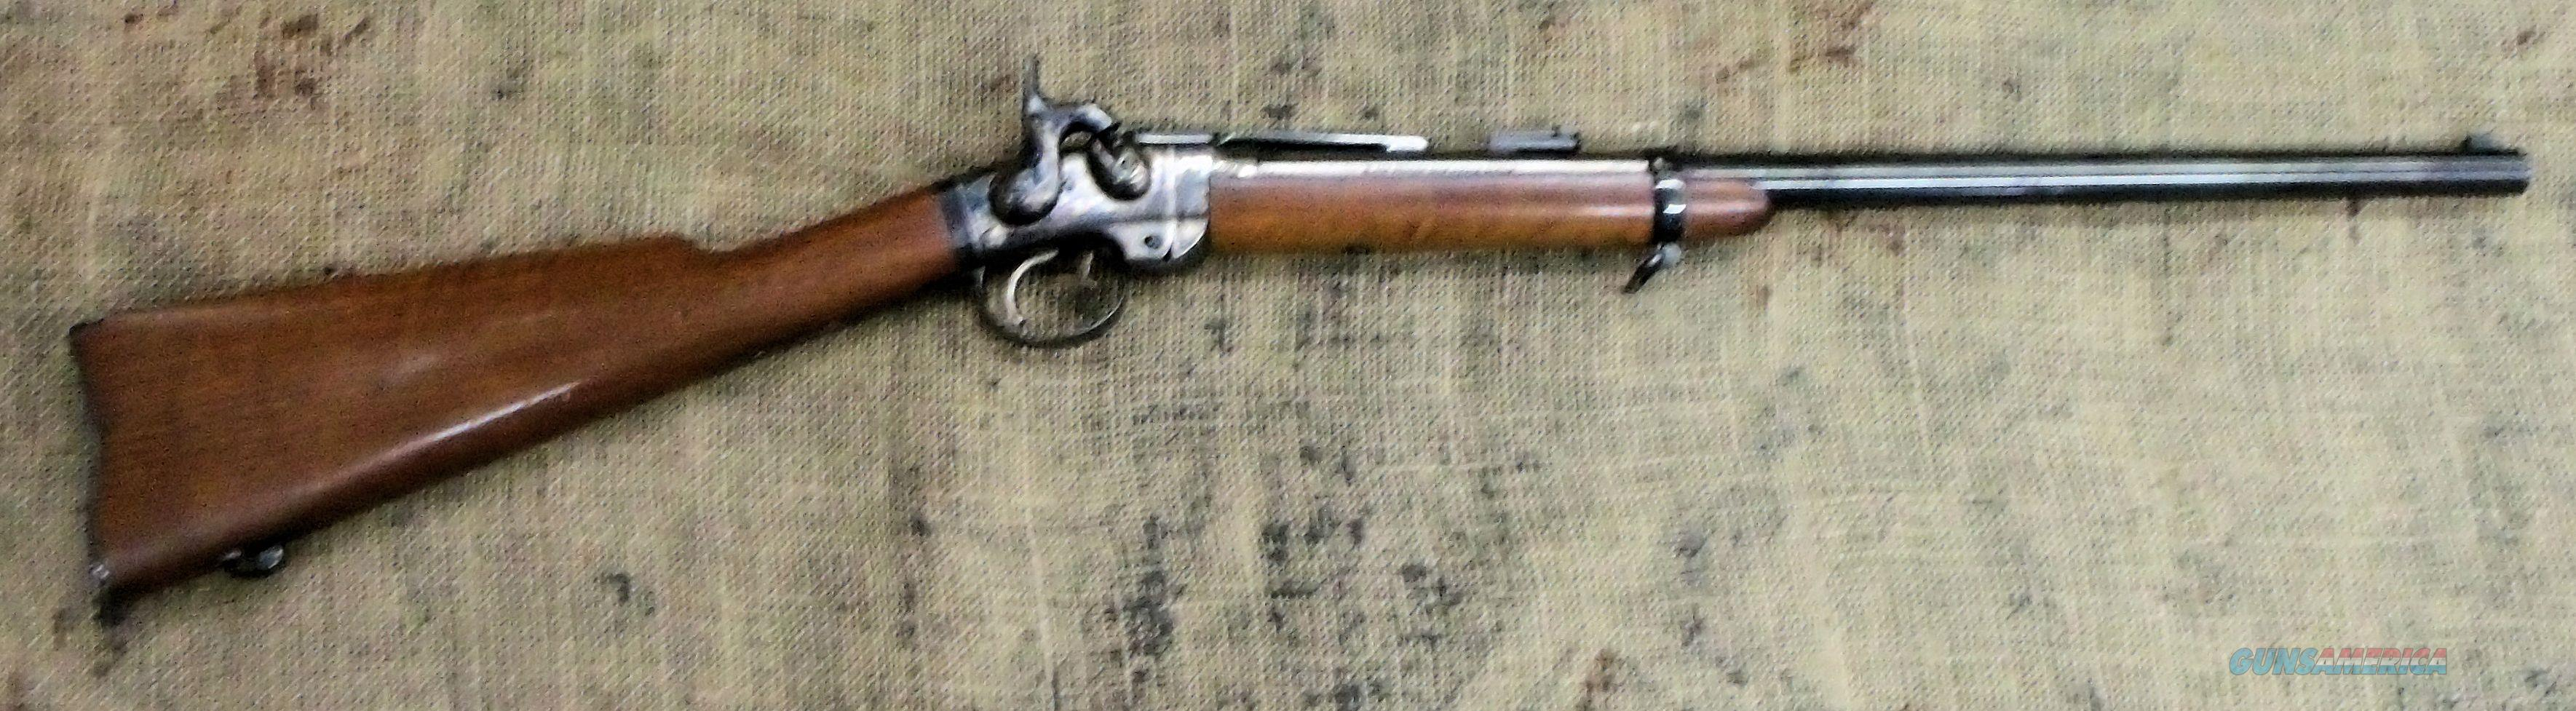 SMITH'S Patent, Navy Arms Co. Reproduction Rifle, .50 Cal.  Guns > Rifles > Navy Arms Rifles